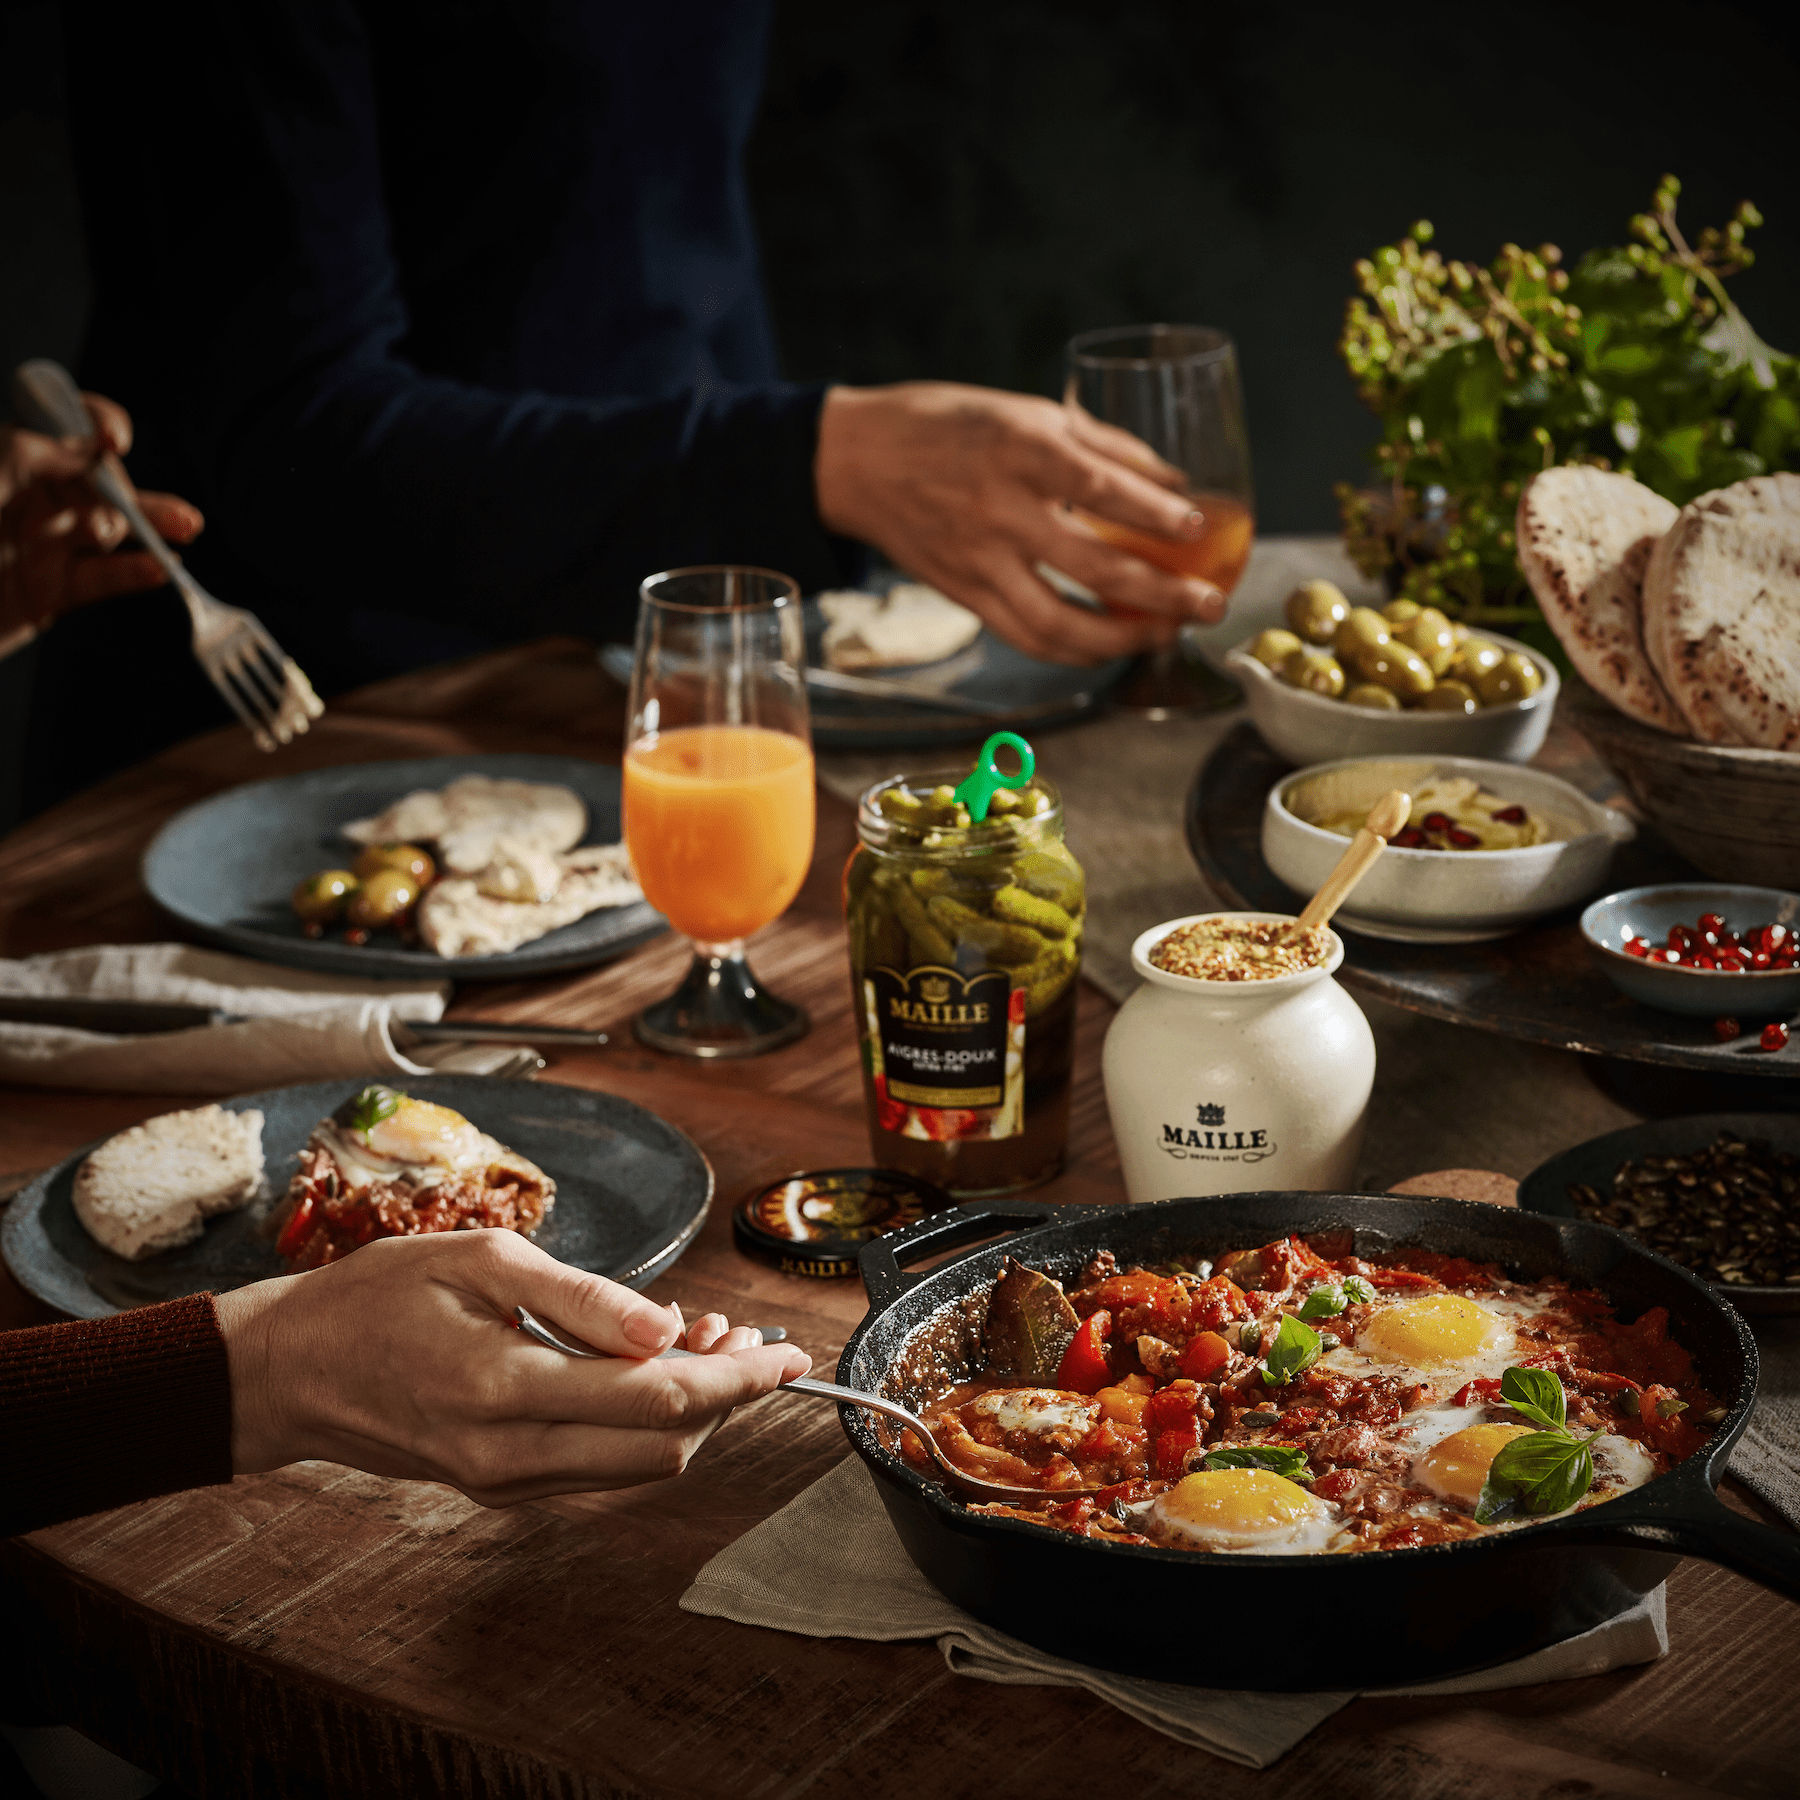 Maille - Shakshuka Maille gourmet